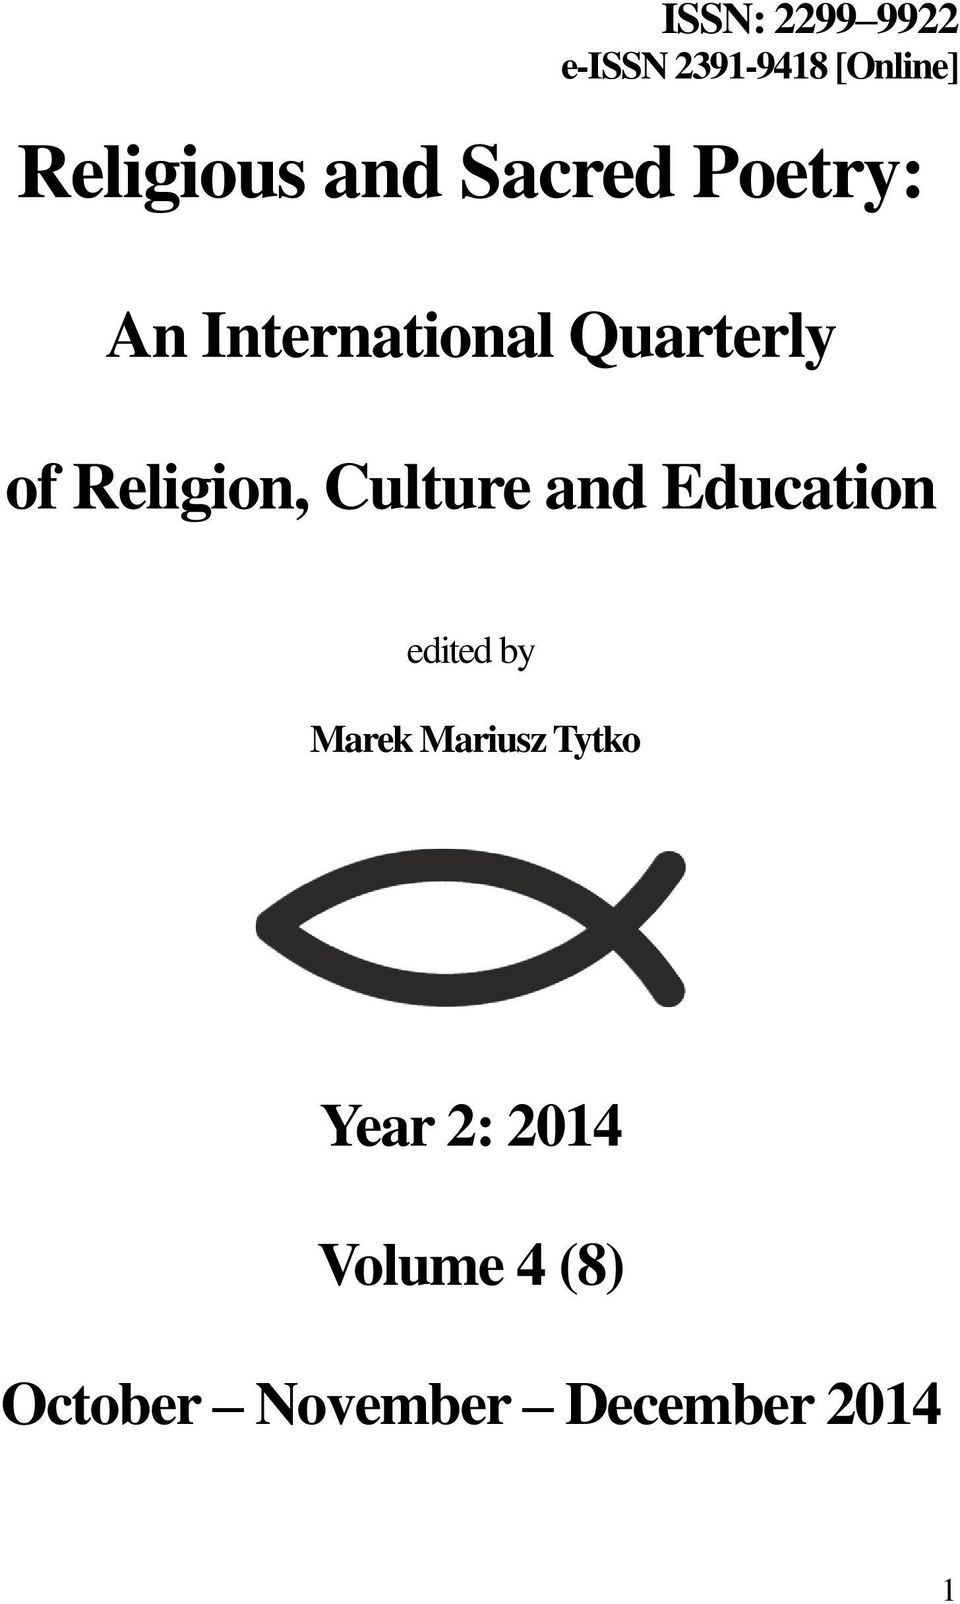 Culture and Education edited by Marek Mariusz Tytko